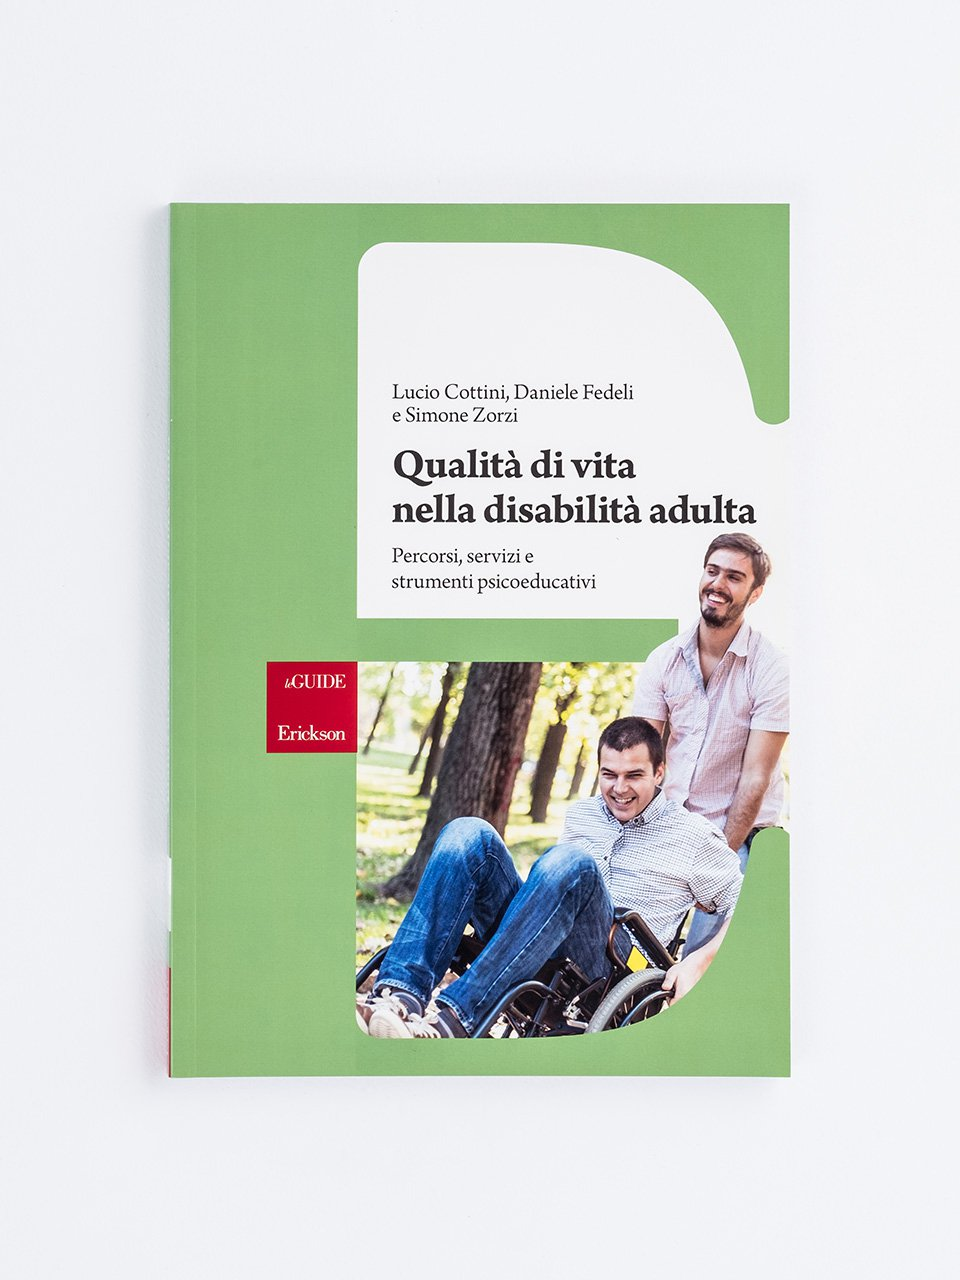 Qualità di vita nella disabilità adulta - Disability Studies - Libri - Erickson